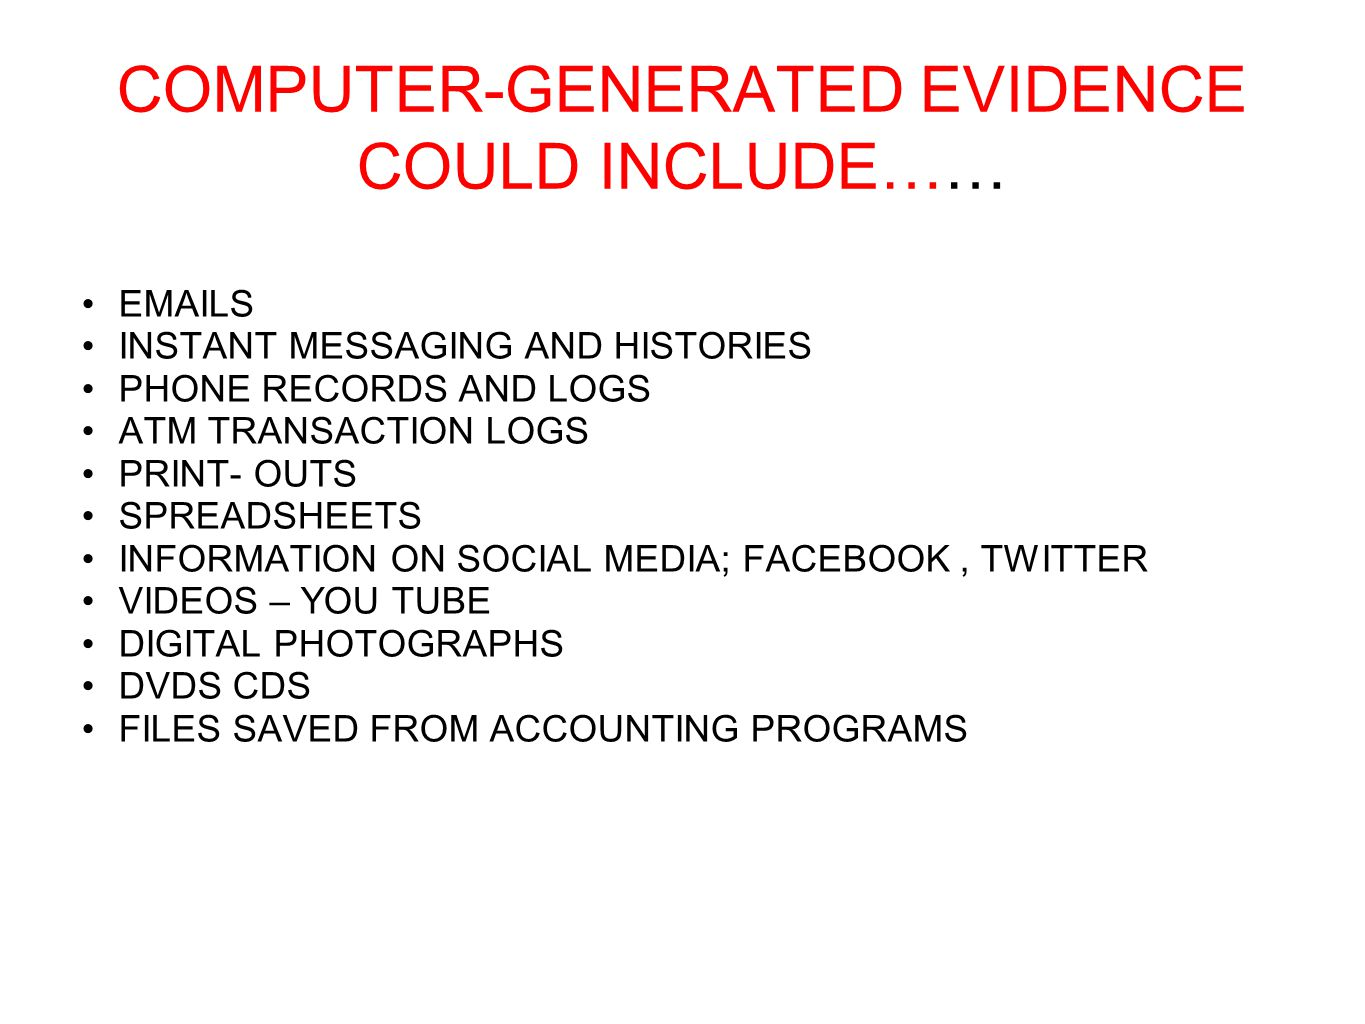 COMPUTER-GENERATED EVIDENCE COULD INCLUDE……